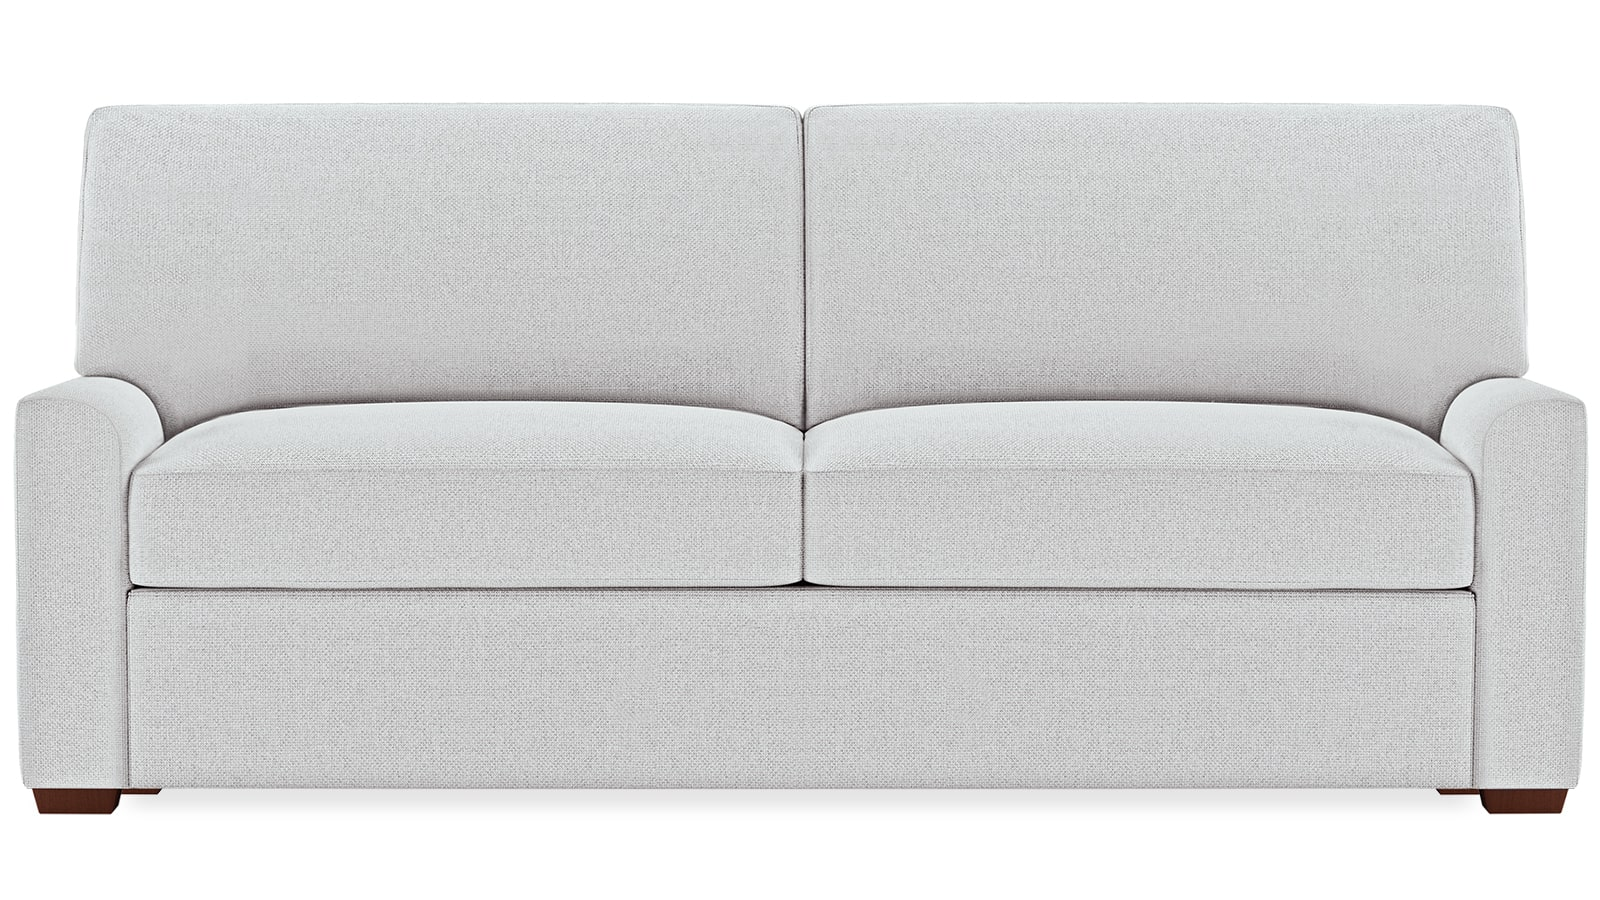 sofa sleeper san francisco cushions for bedroom more american leather comfort klein